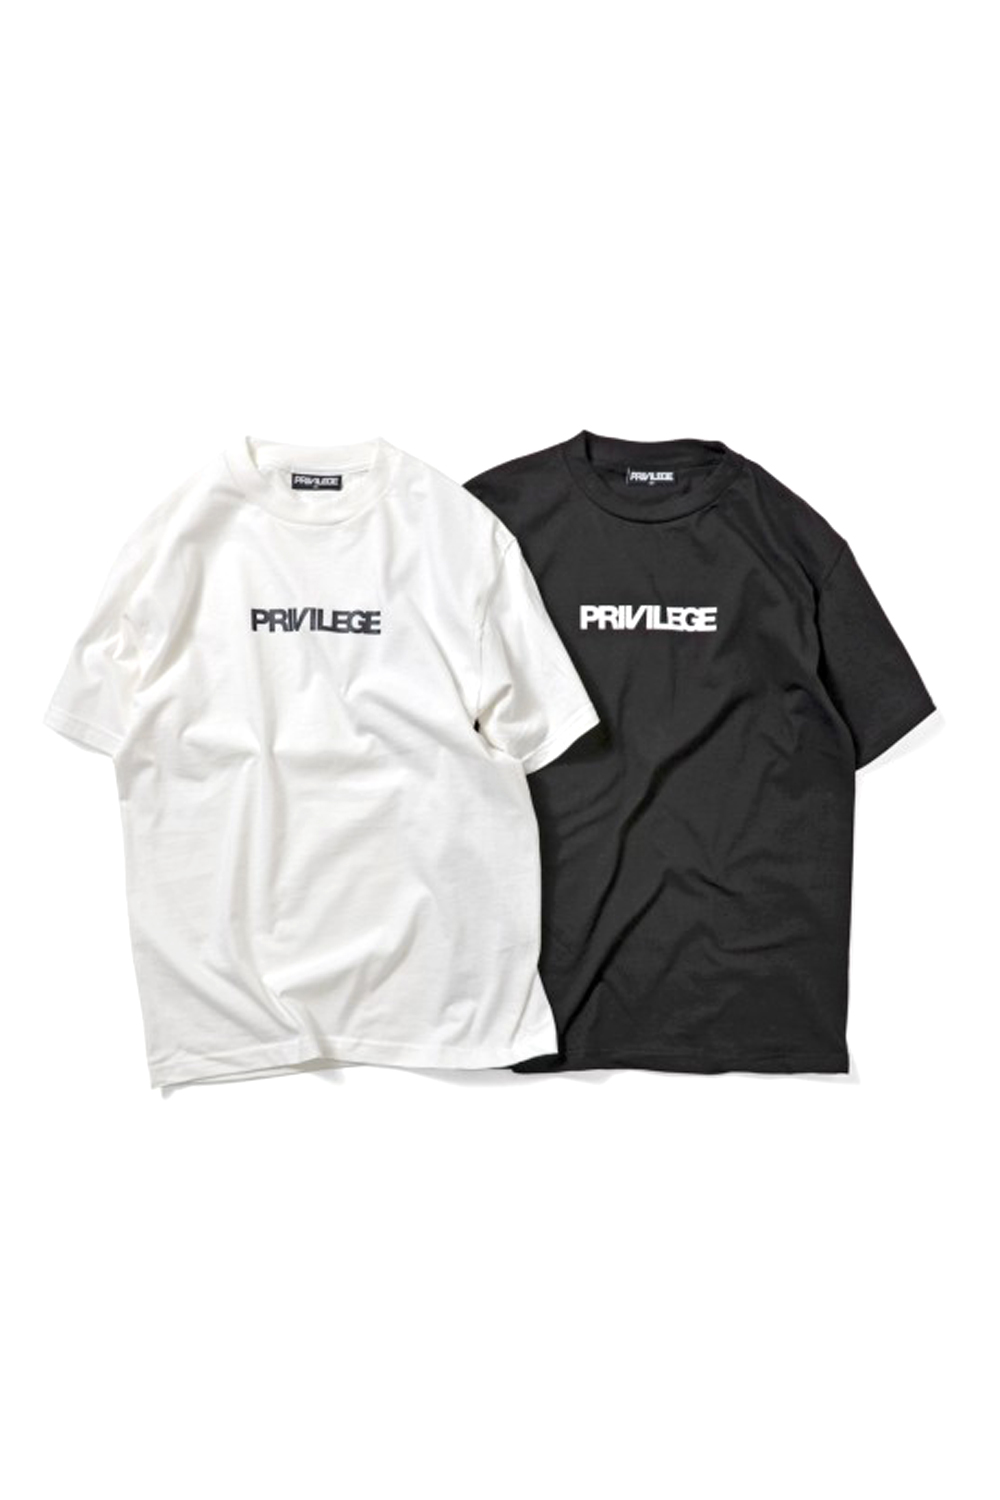 画像1: 【PRIVILEGE】PRIVILEGE SMALL CORE LOGO TEE